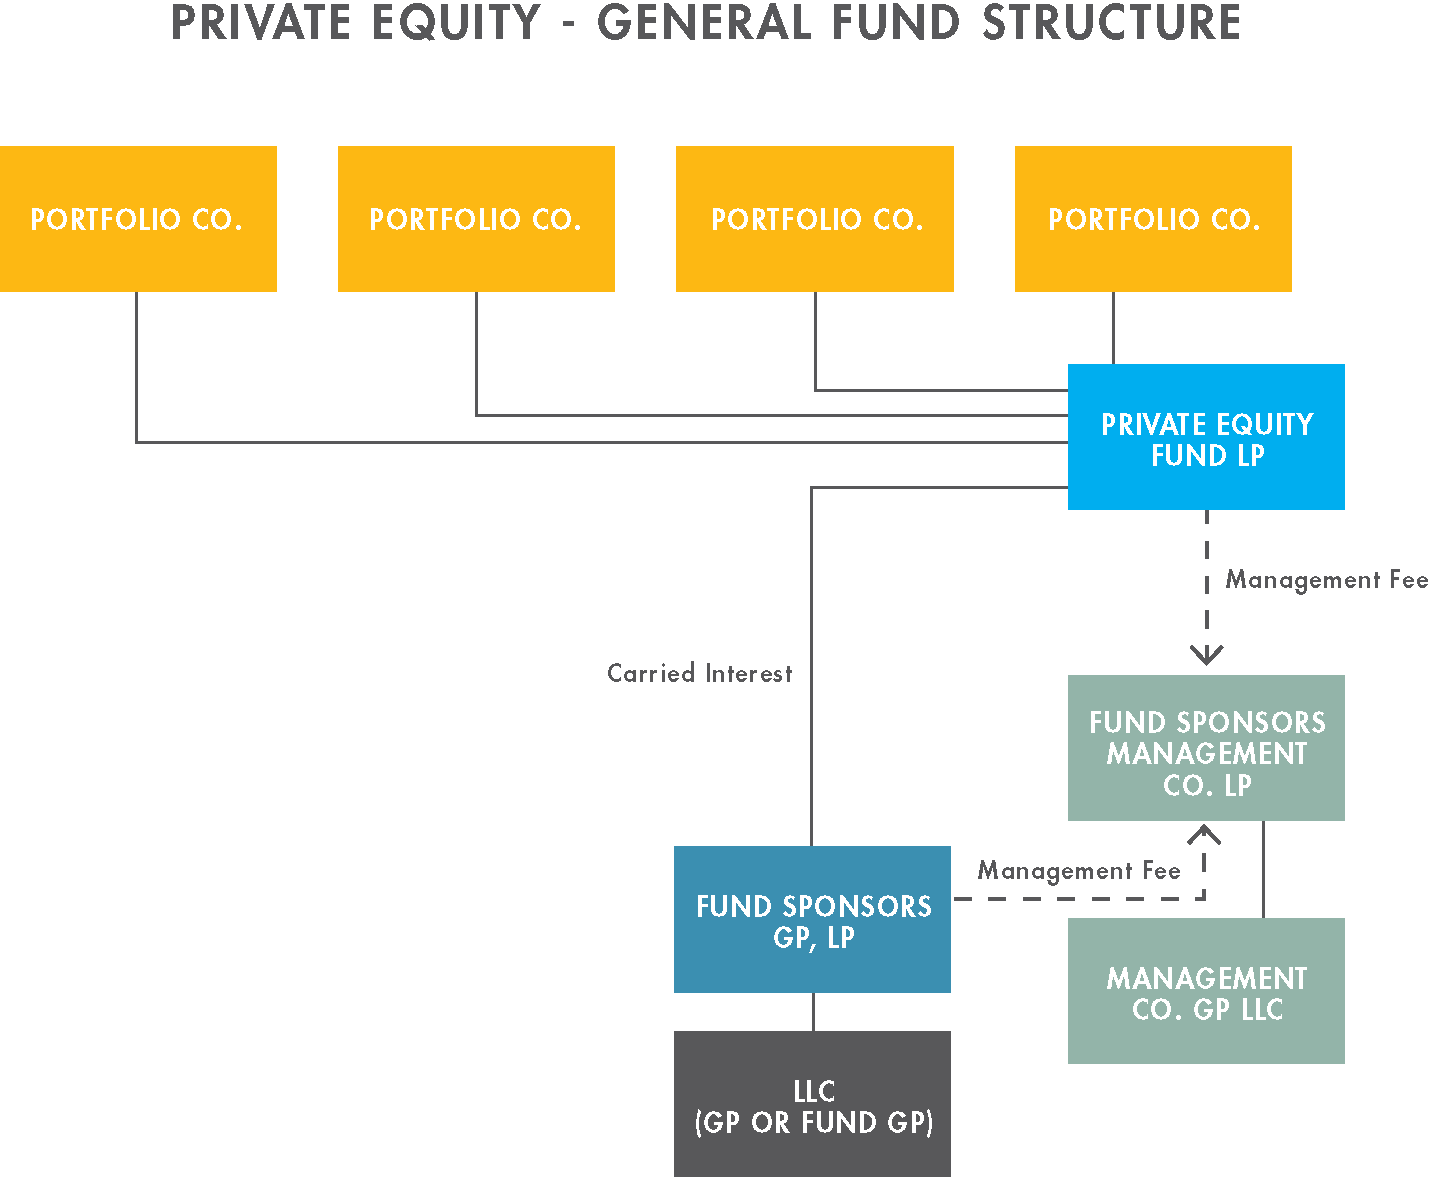 Private Equity Fund Formation 101